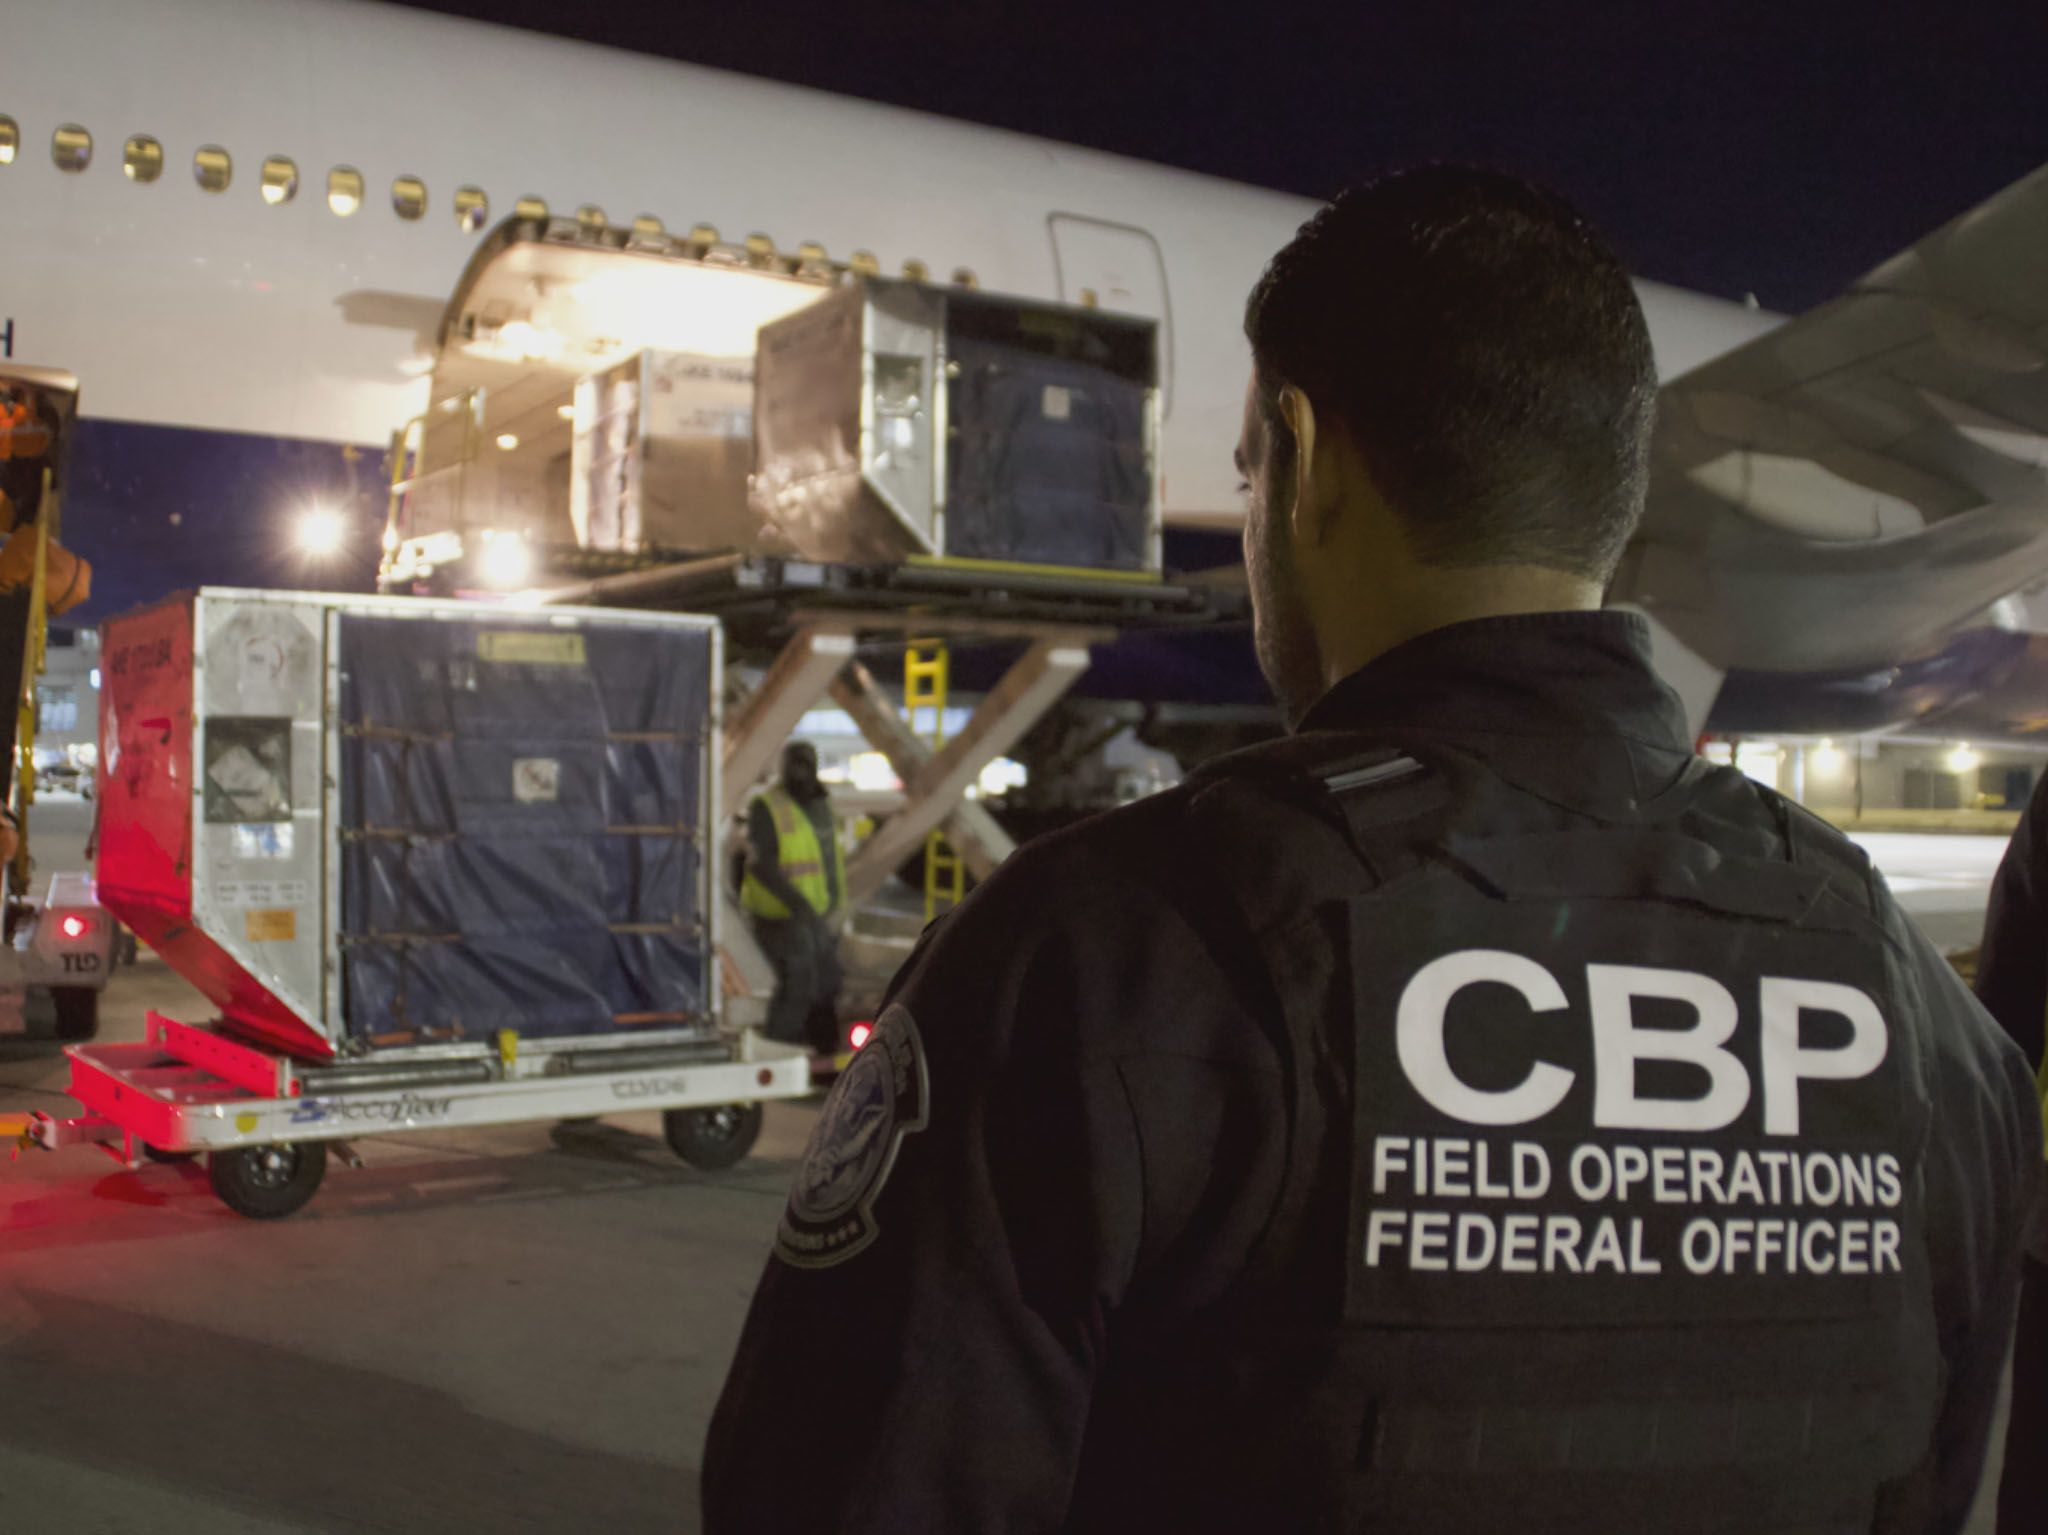 ATECT Officer Miguel Morales watches cargo unload. This image is from To Catch A Smuggler. [Photo of the day - March 2021]